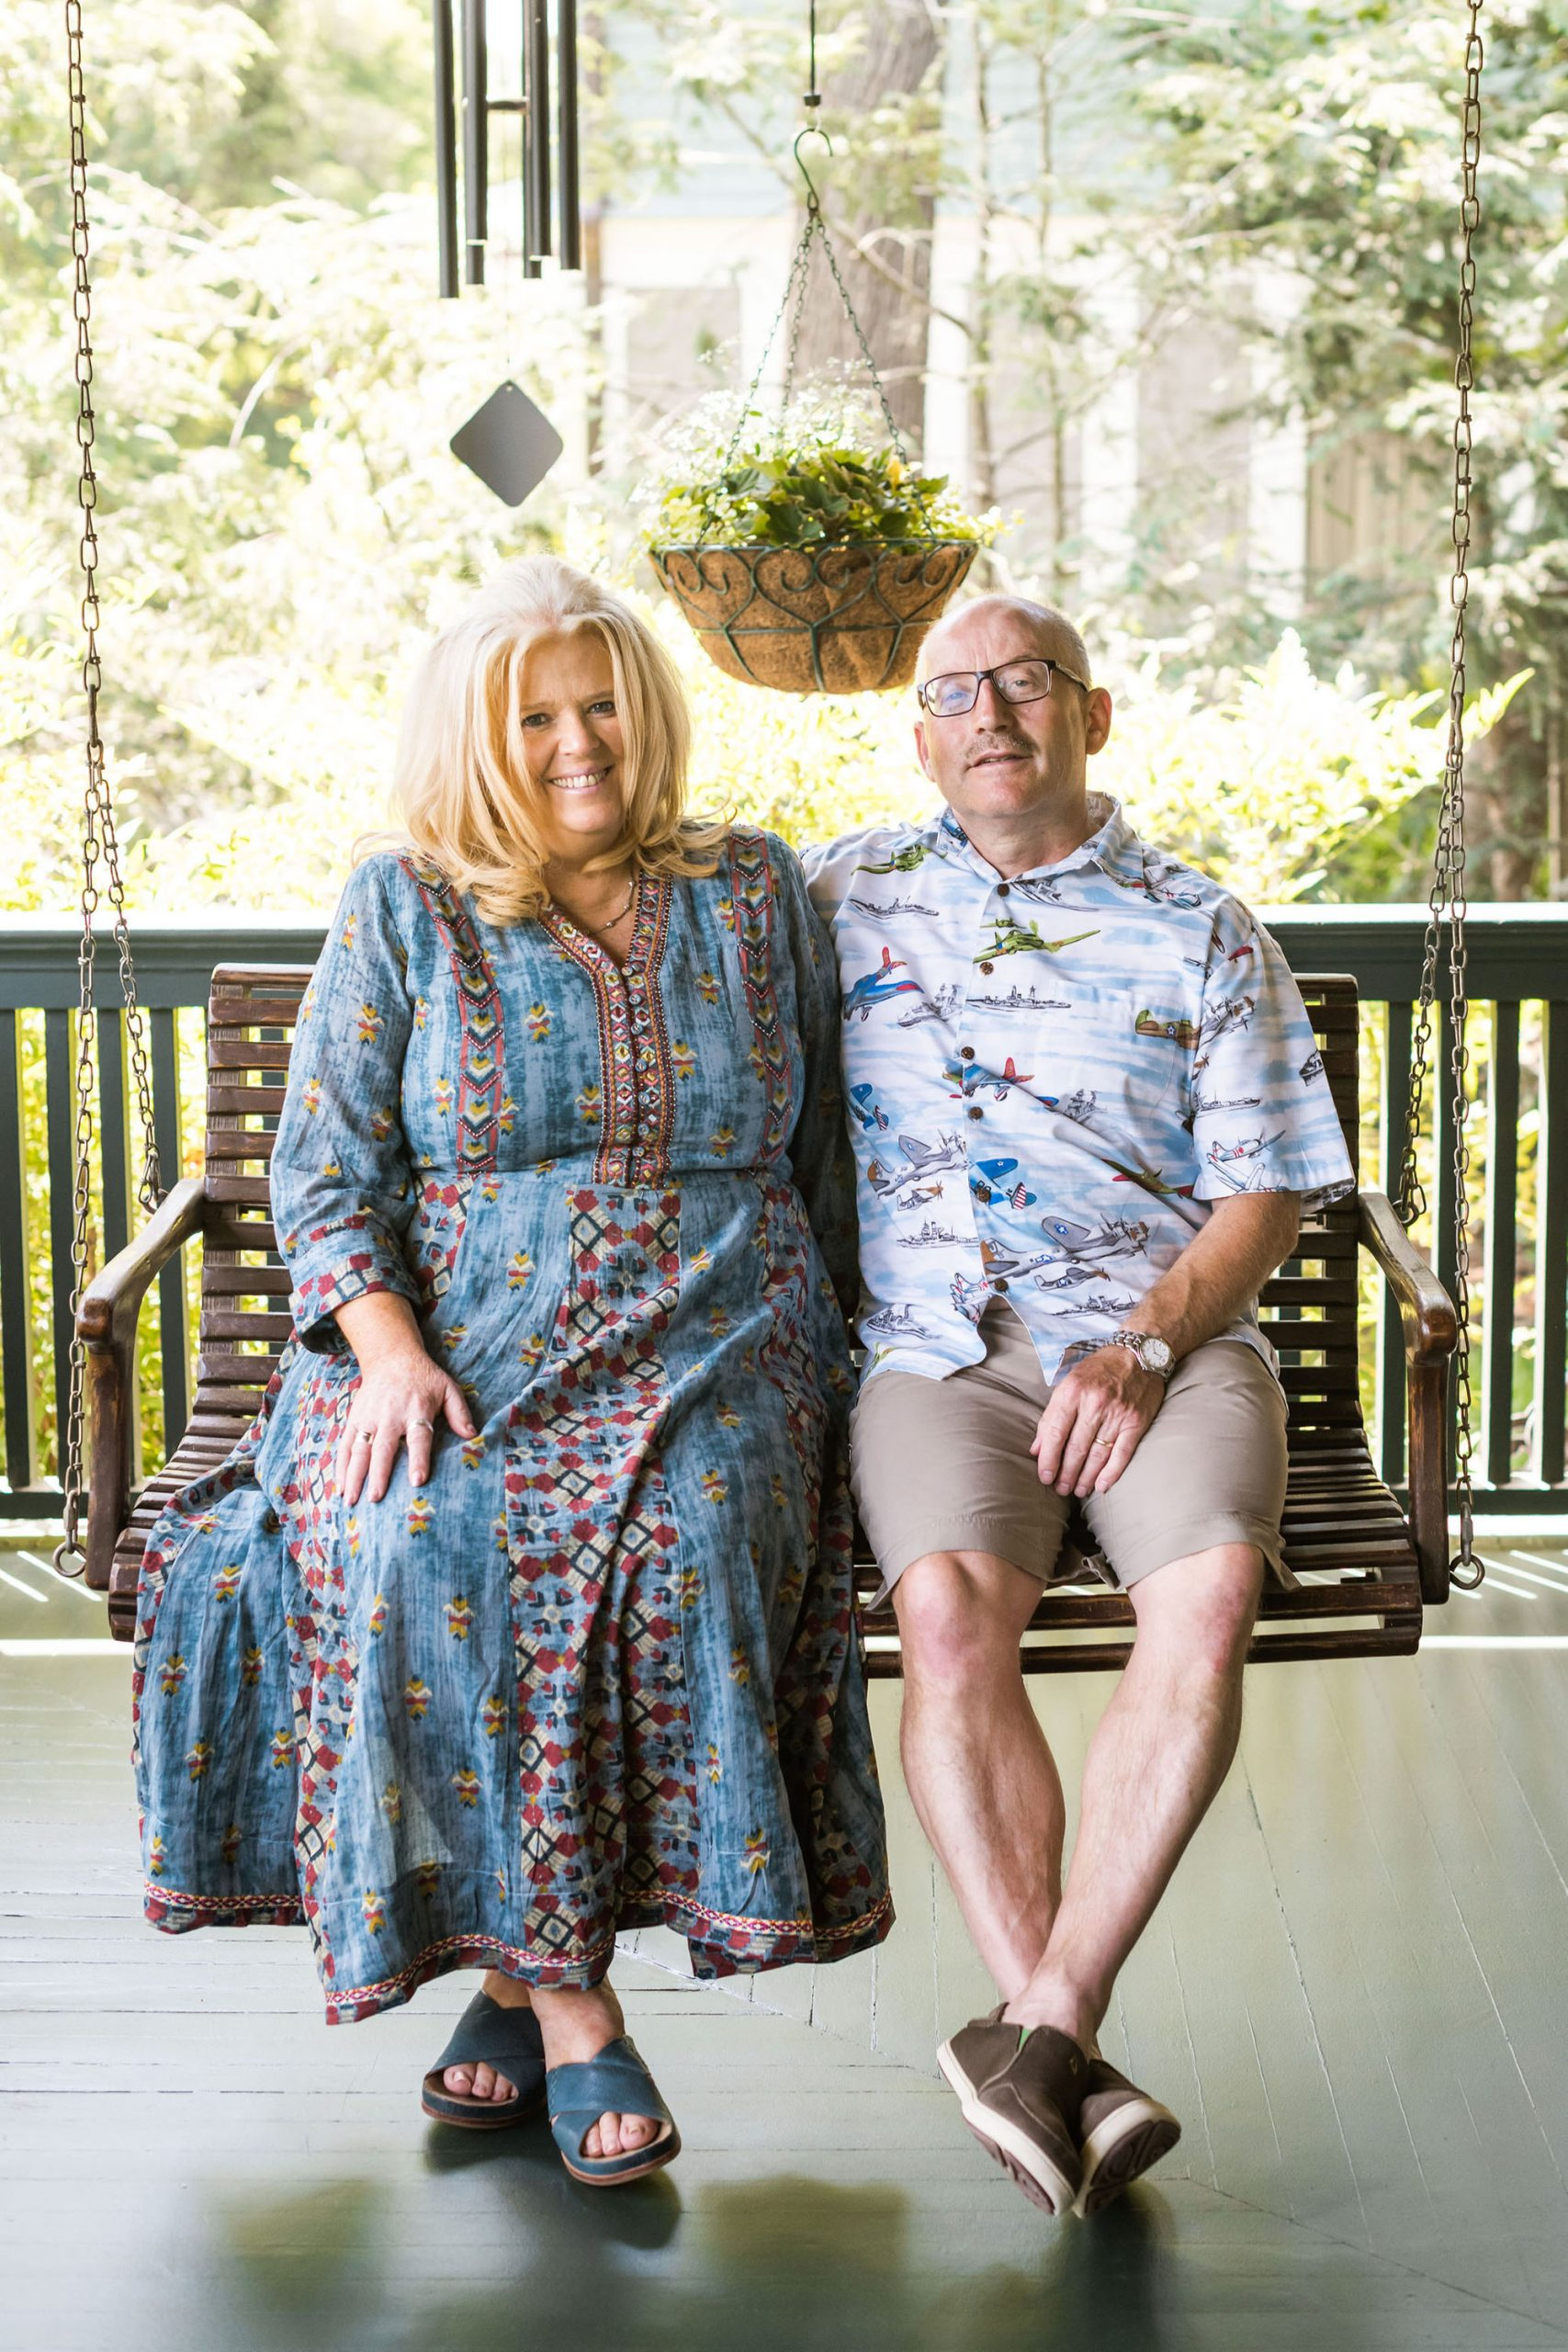 The Innkeepers sitting together on a swing on the porch and smiling. Shawnie weraing a long, floral dress, Willy wearing khaki shorts and a colorful, airplane-patterned shirt.